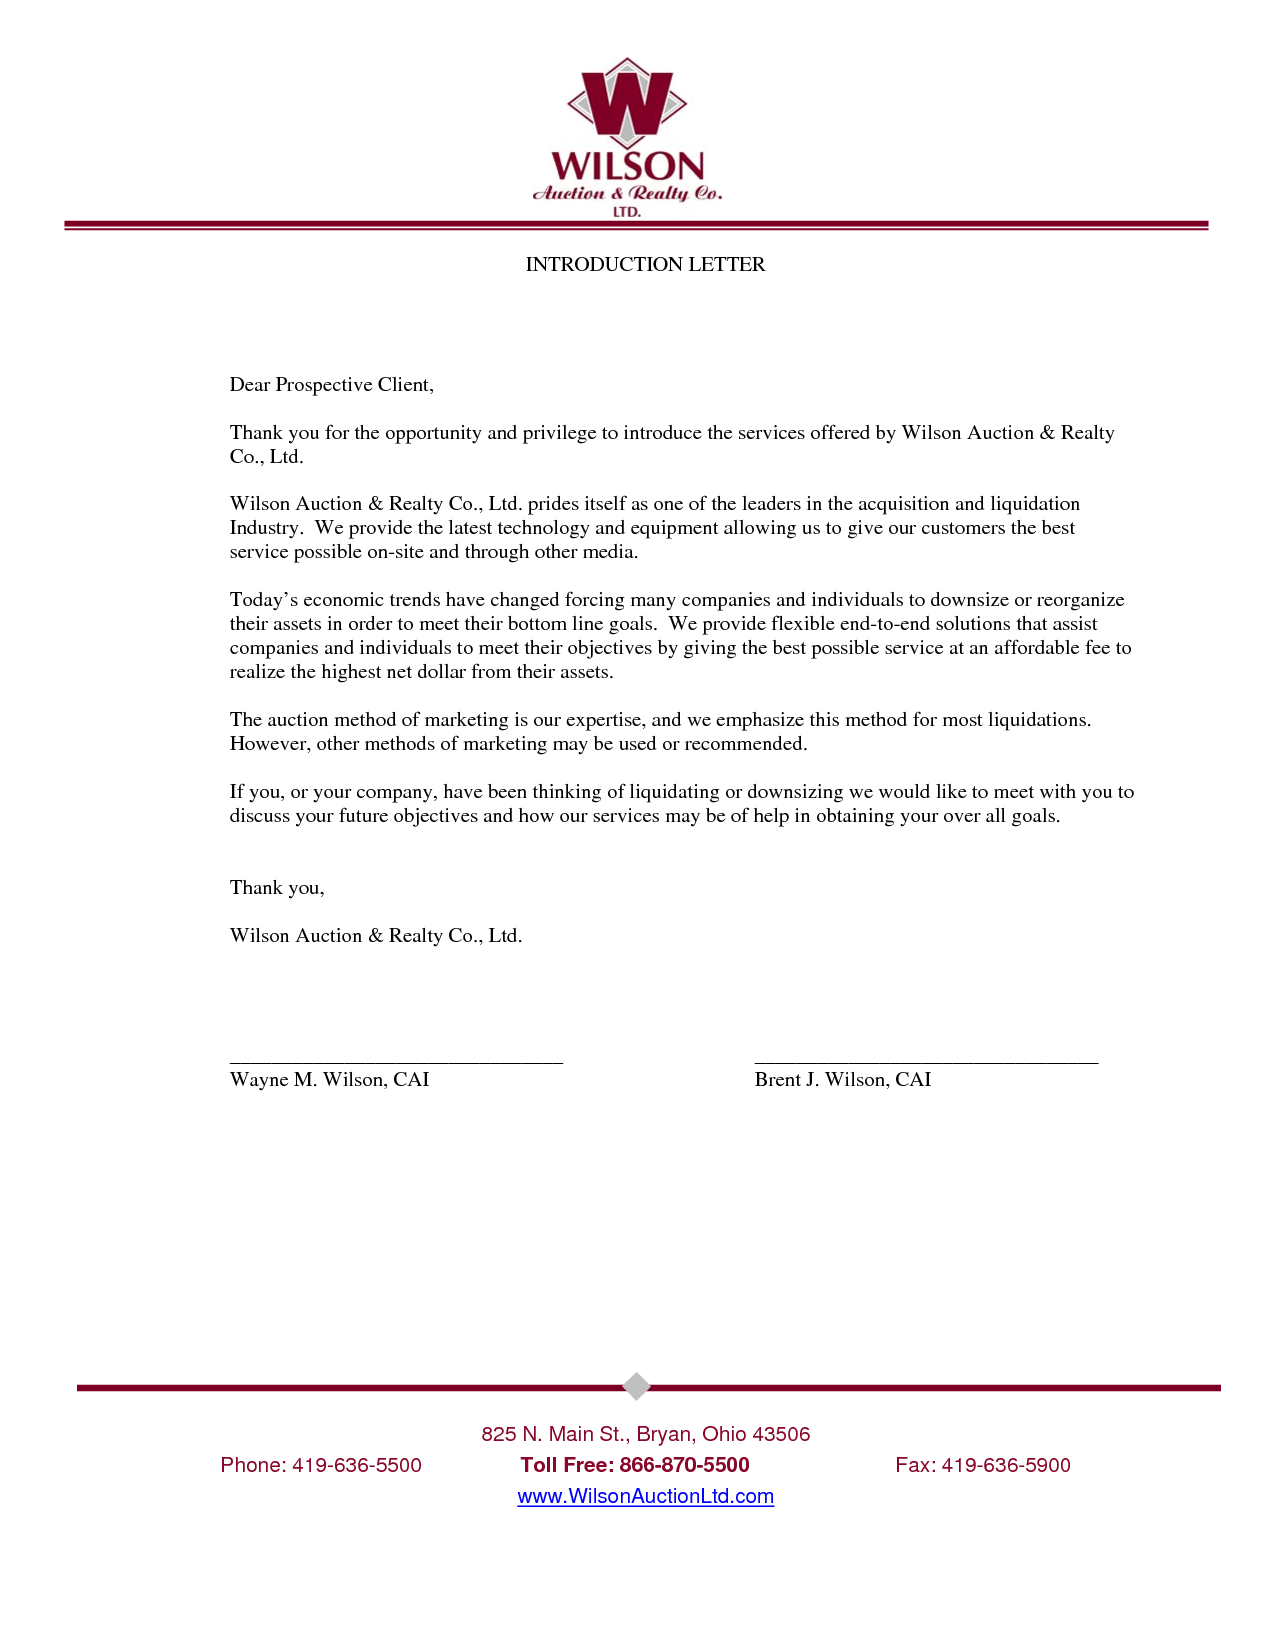 Introduction Letter Format For New Busine Best Business Letter